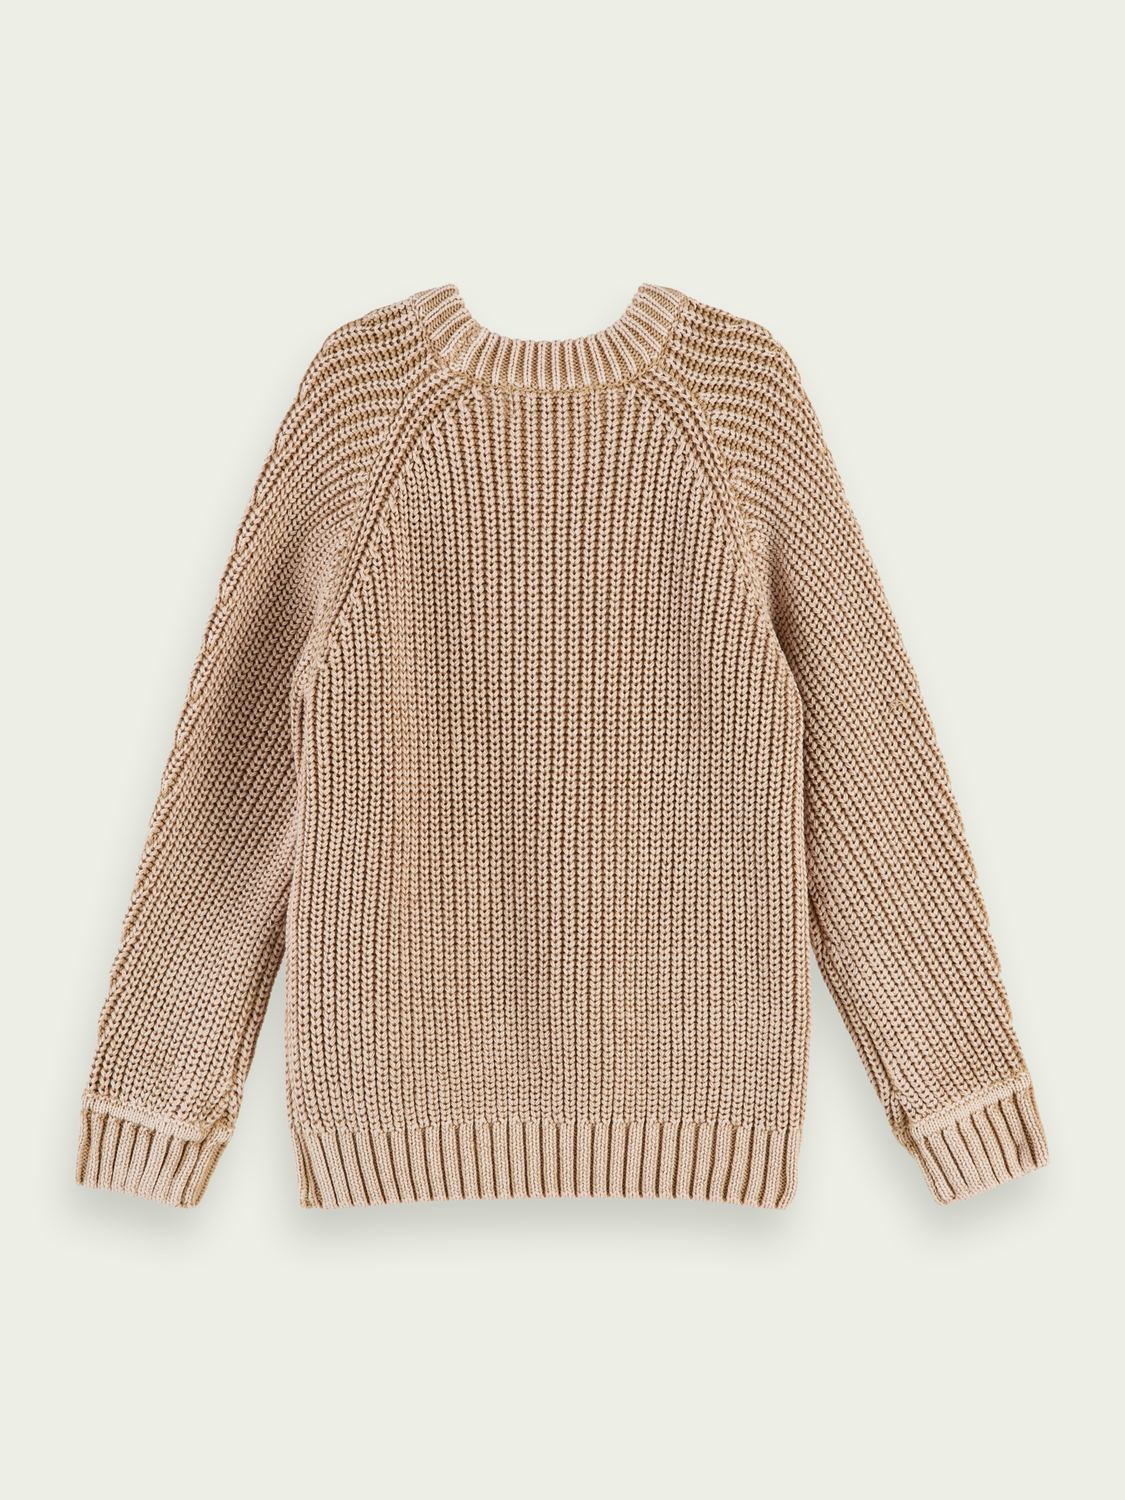 Boys Structured knit cotton pullover